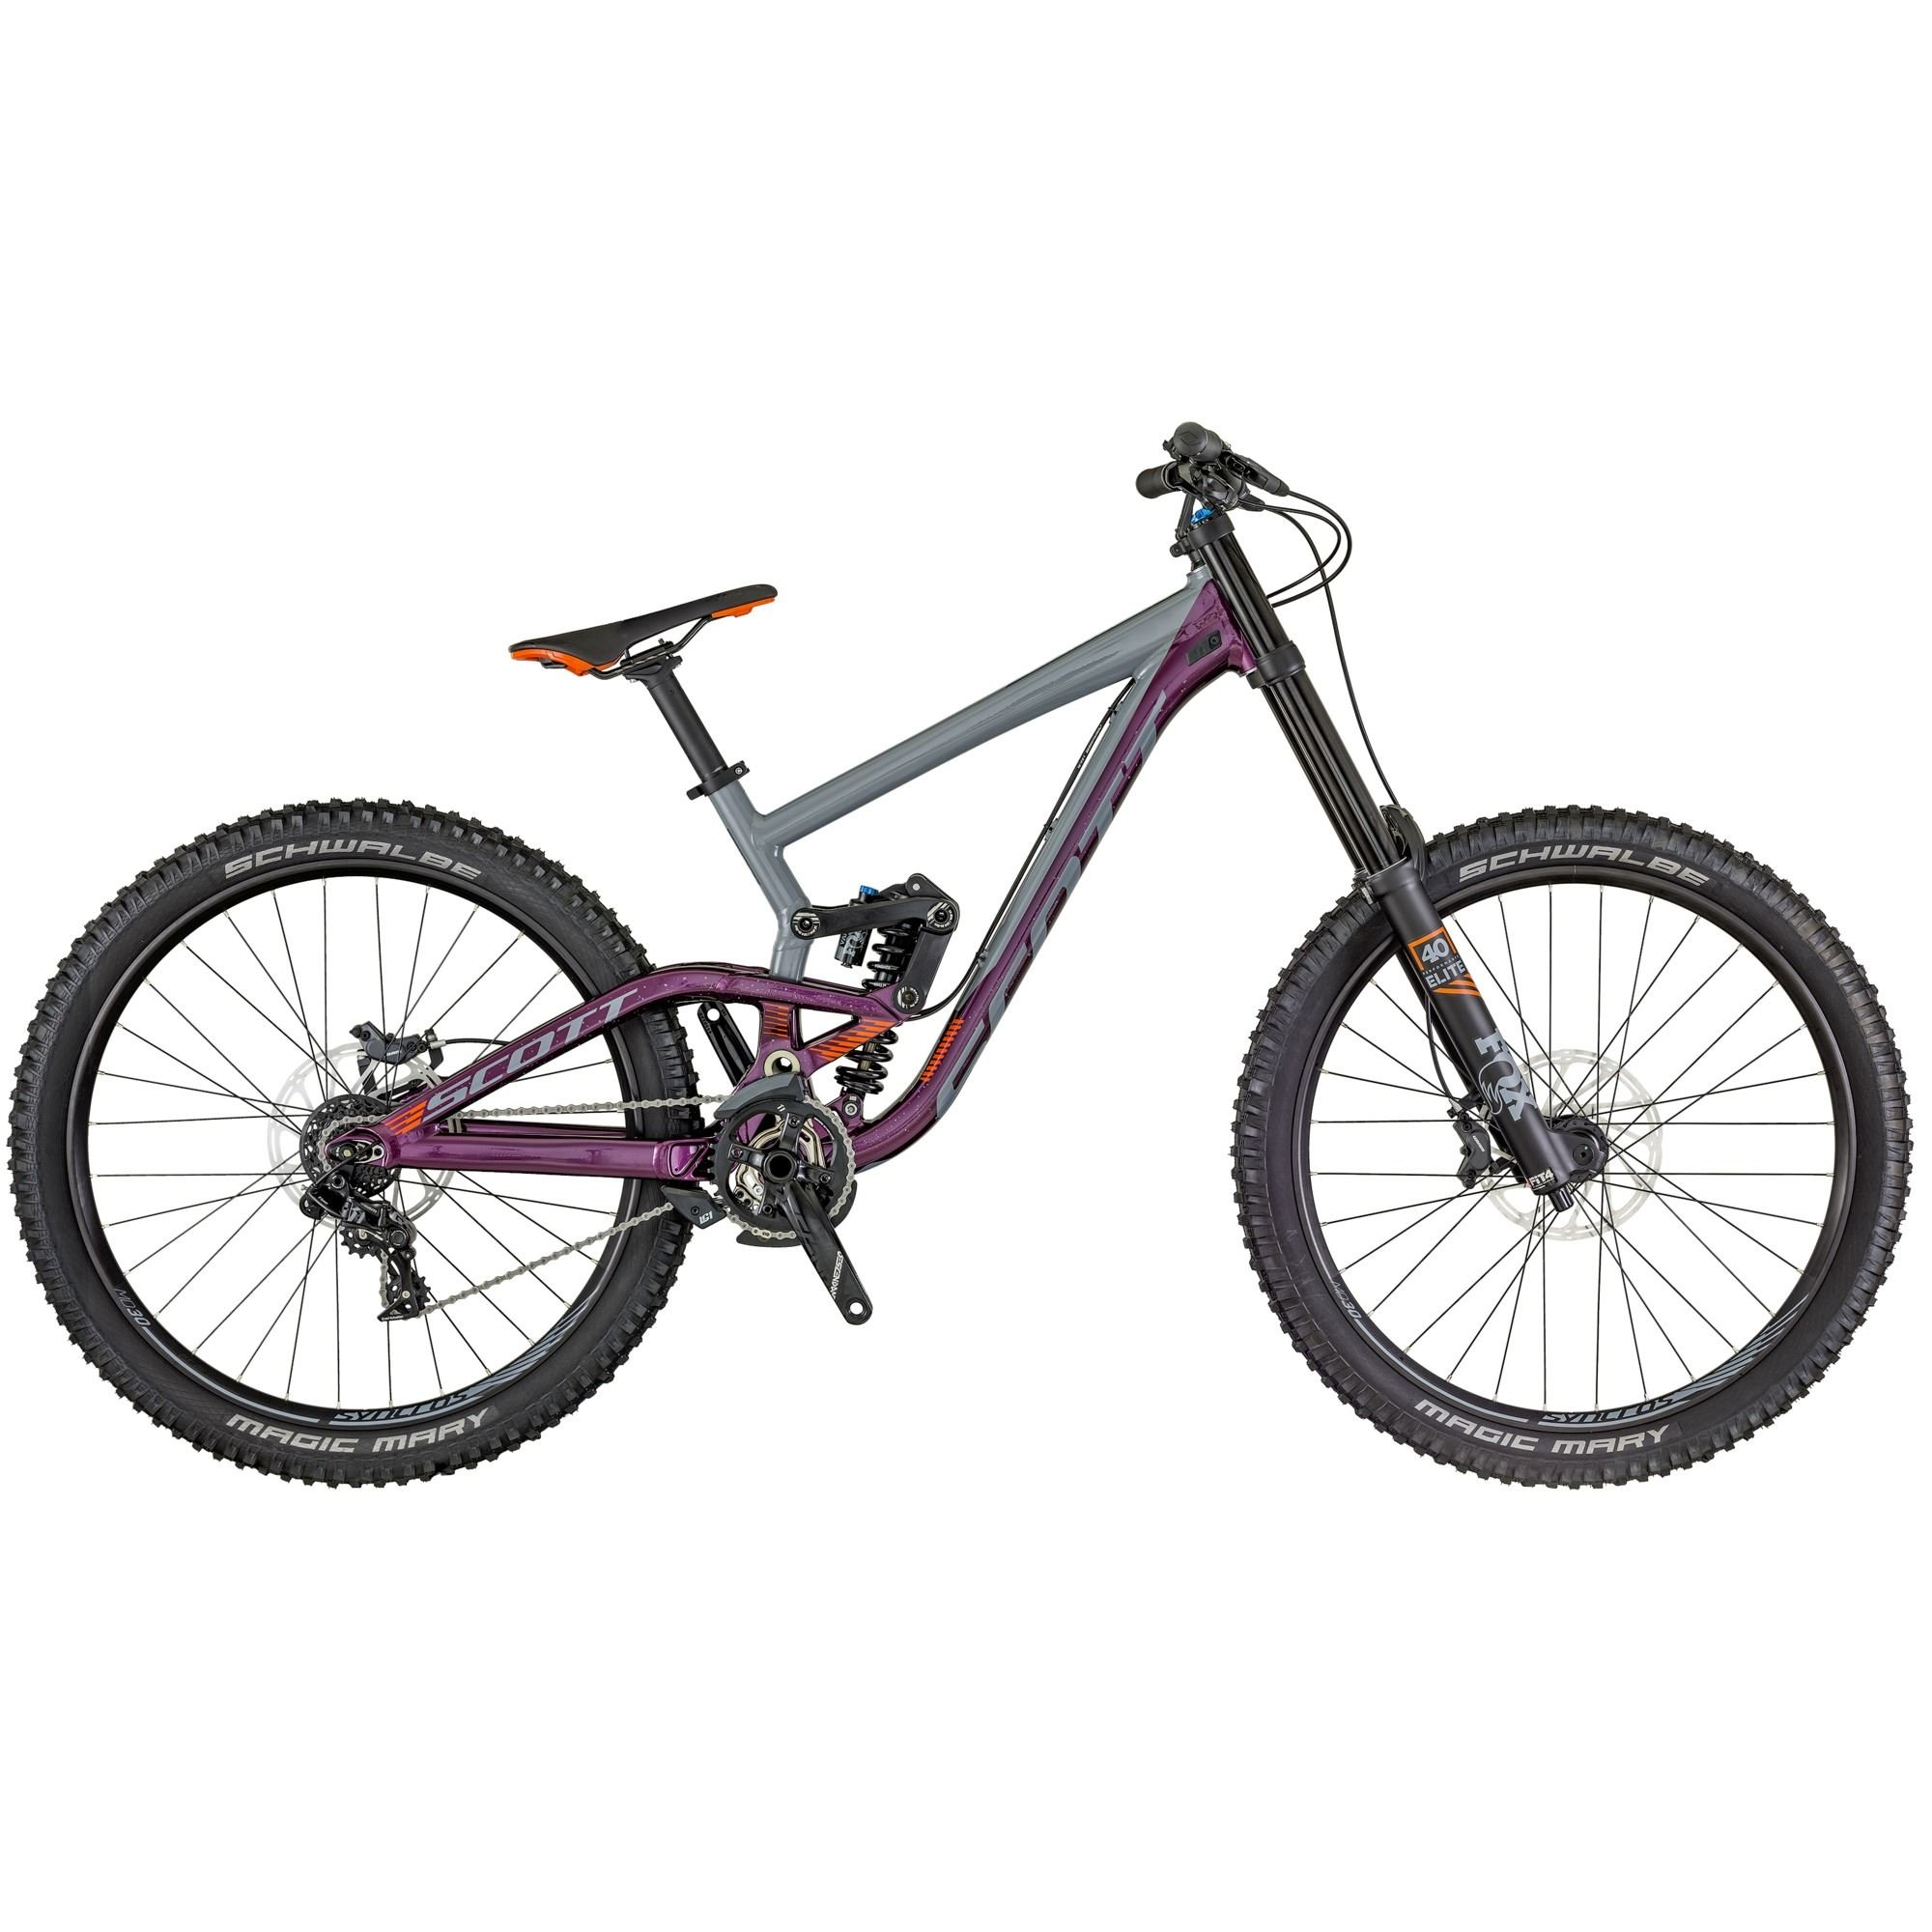 DH-bike | Scott Gambler 720 - Size XL